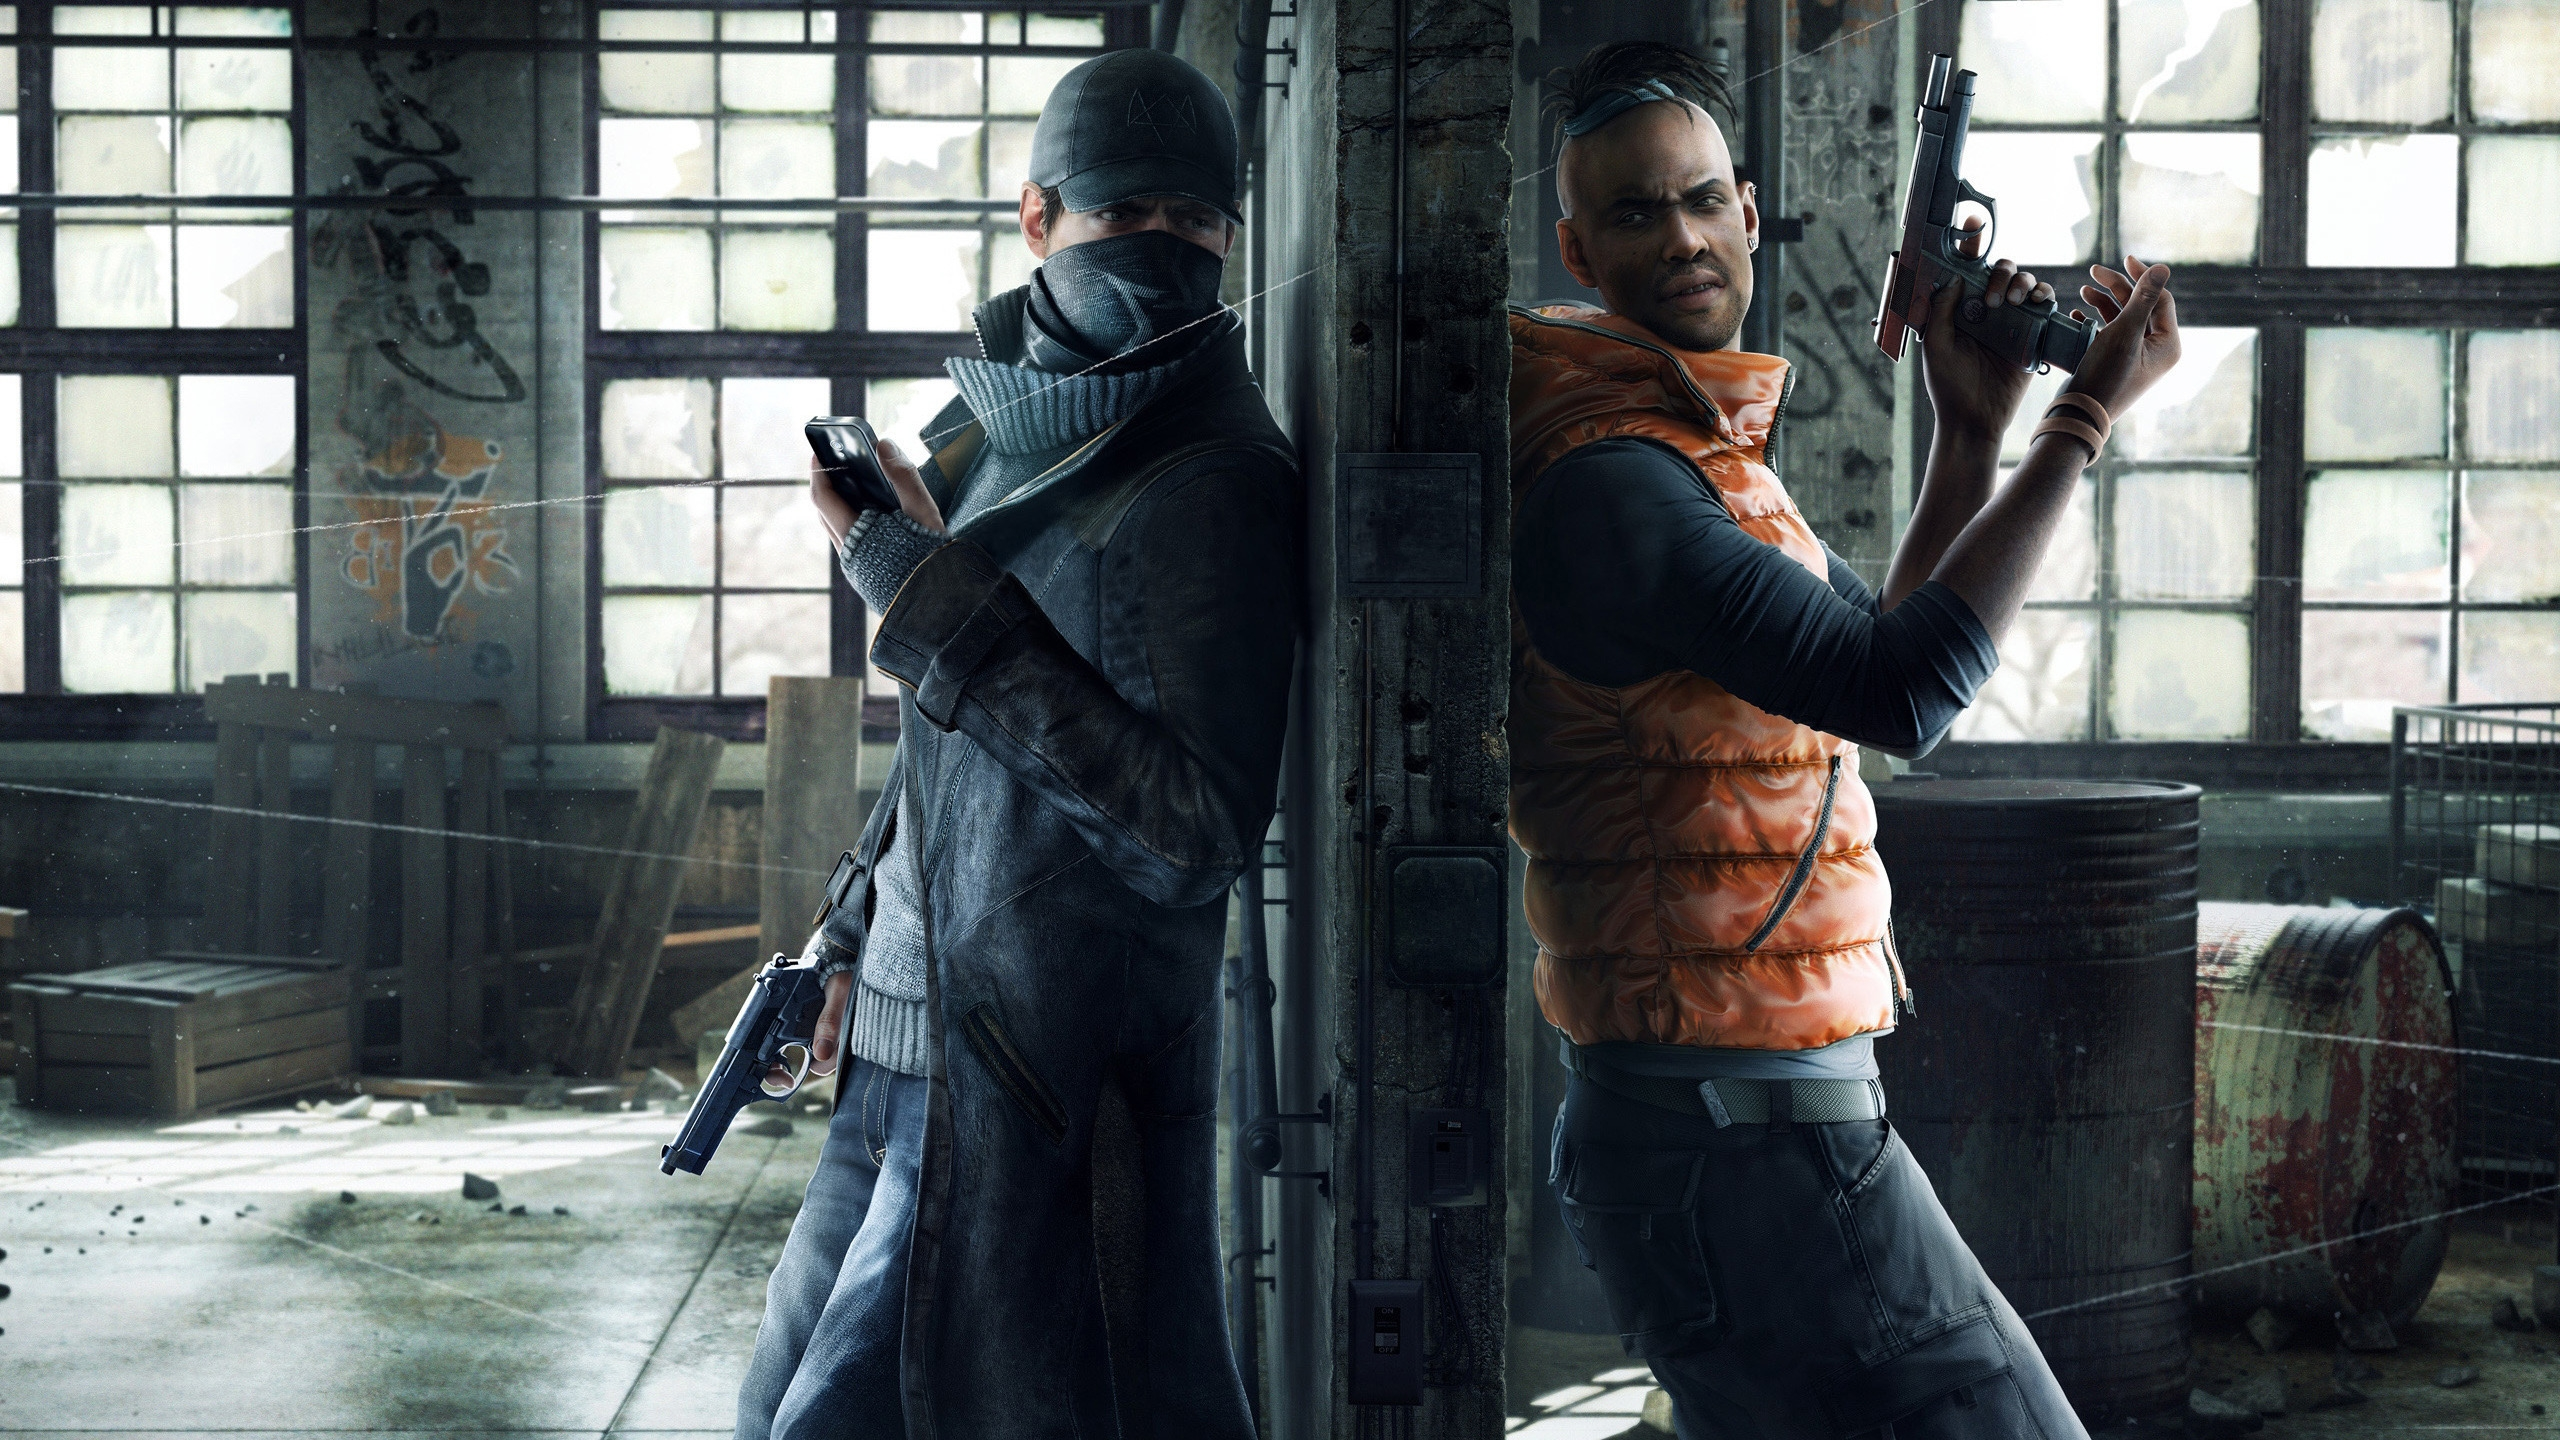 Watchdogs Aiden and Wade for 2560x1440 HDTV resolution